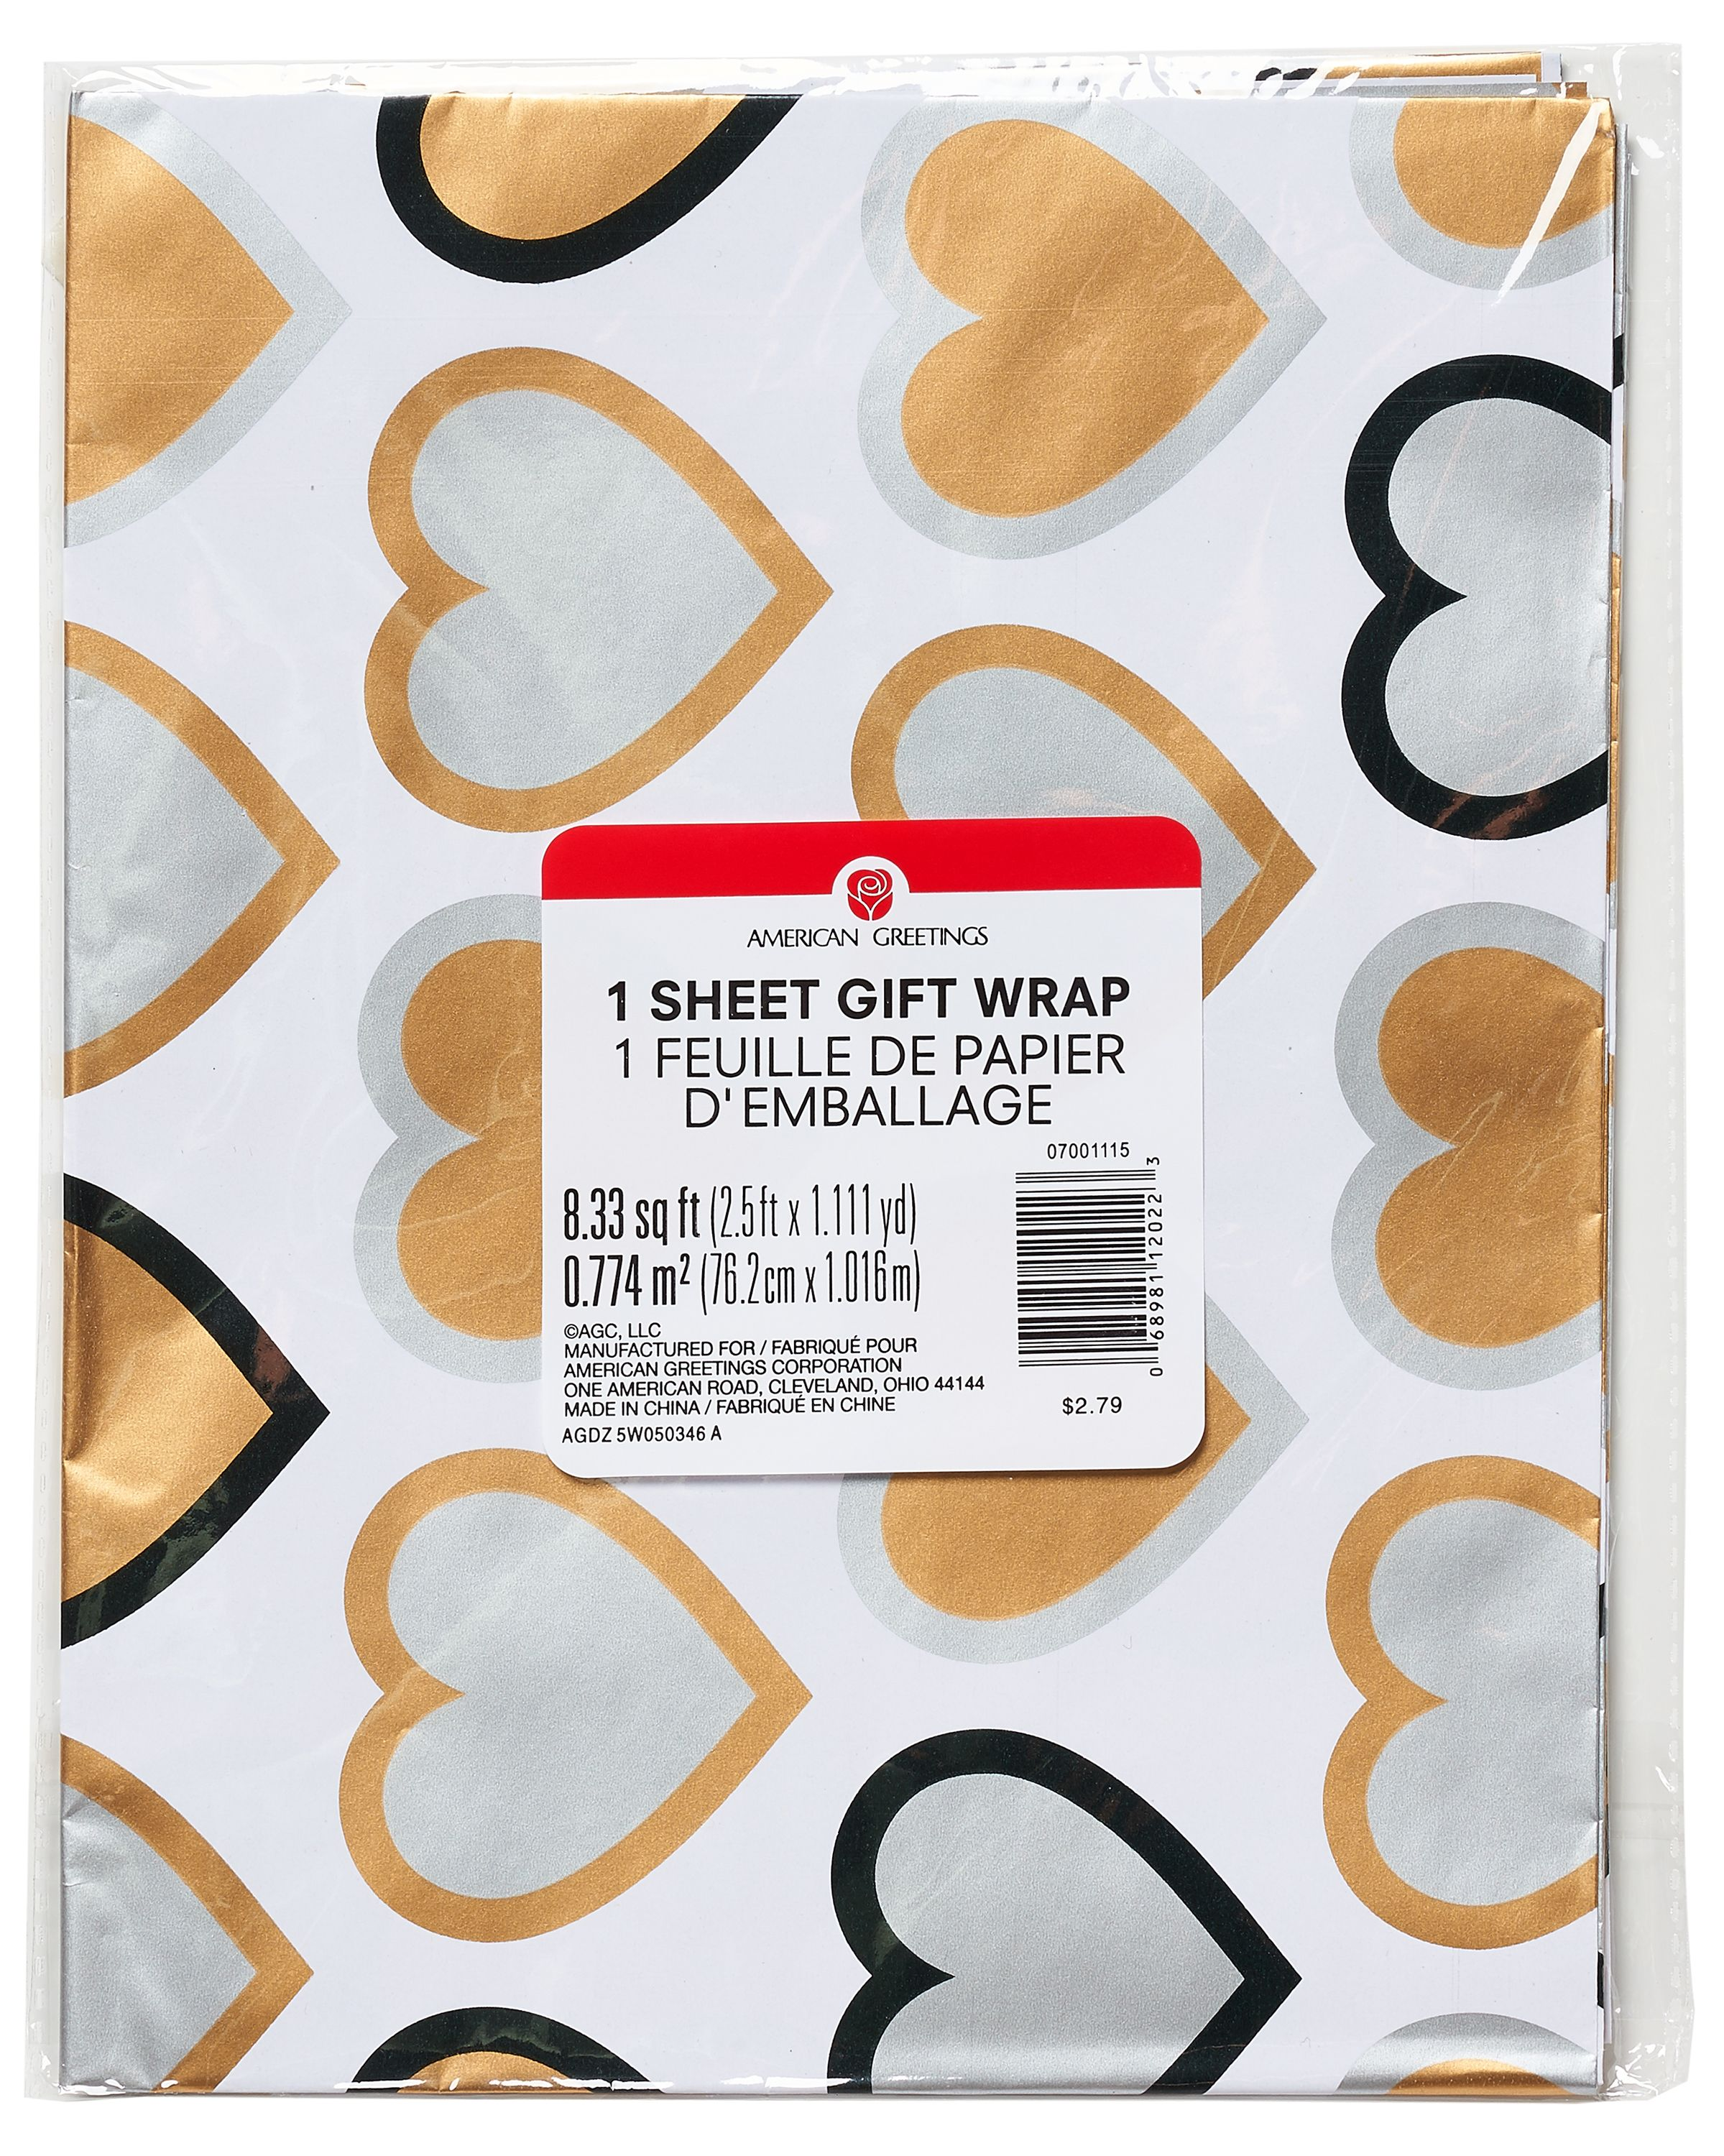 American Greetings Gold Silver Hearts Wrapping Paper Sheet 25 X